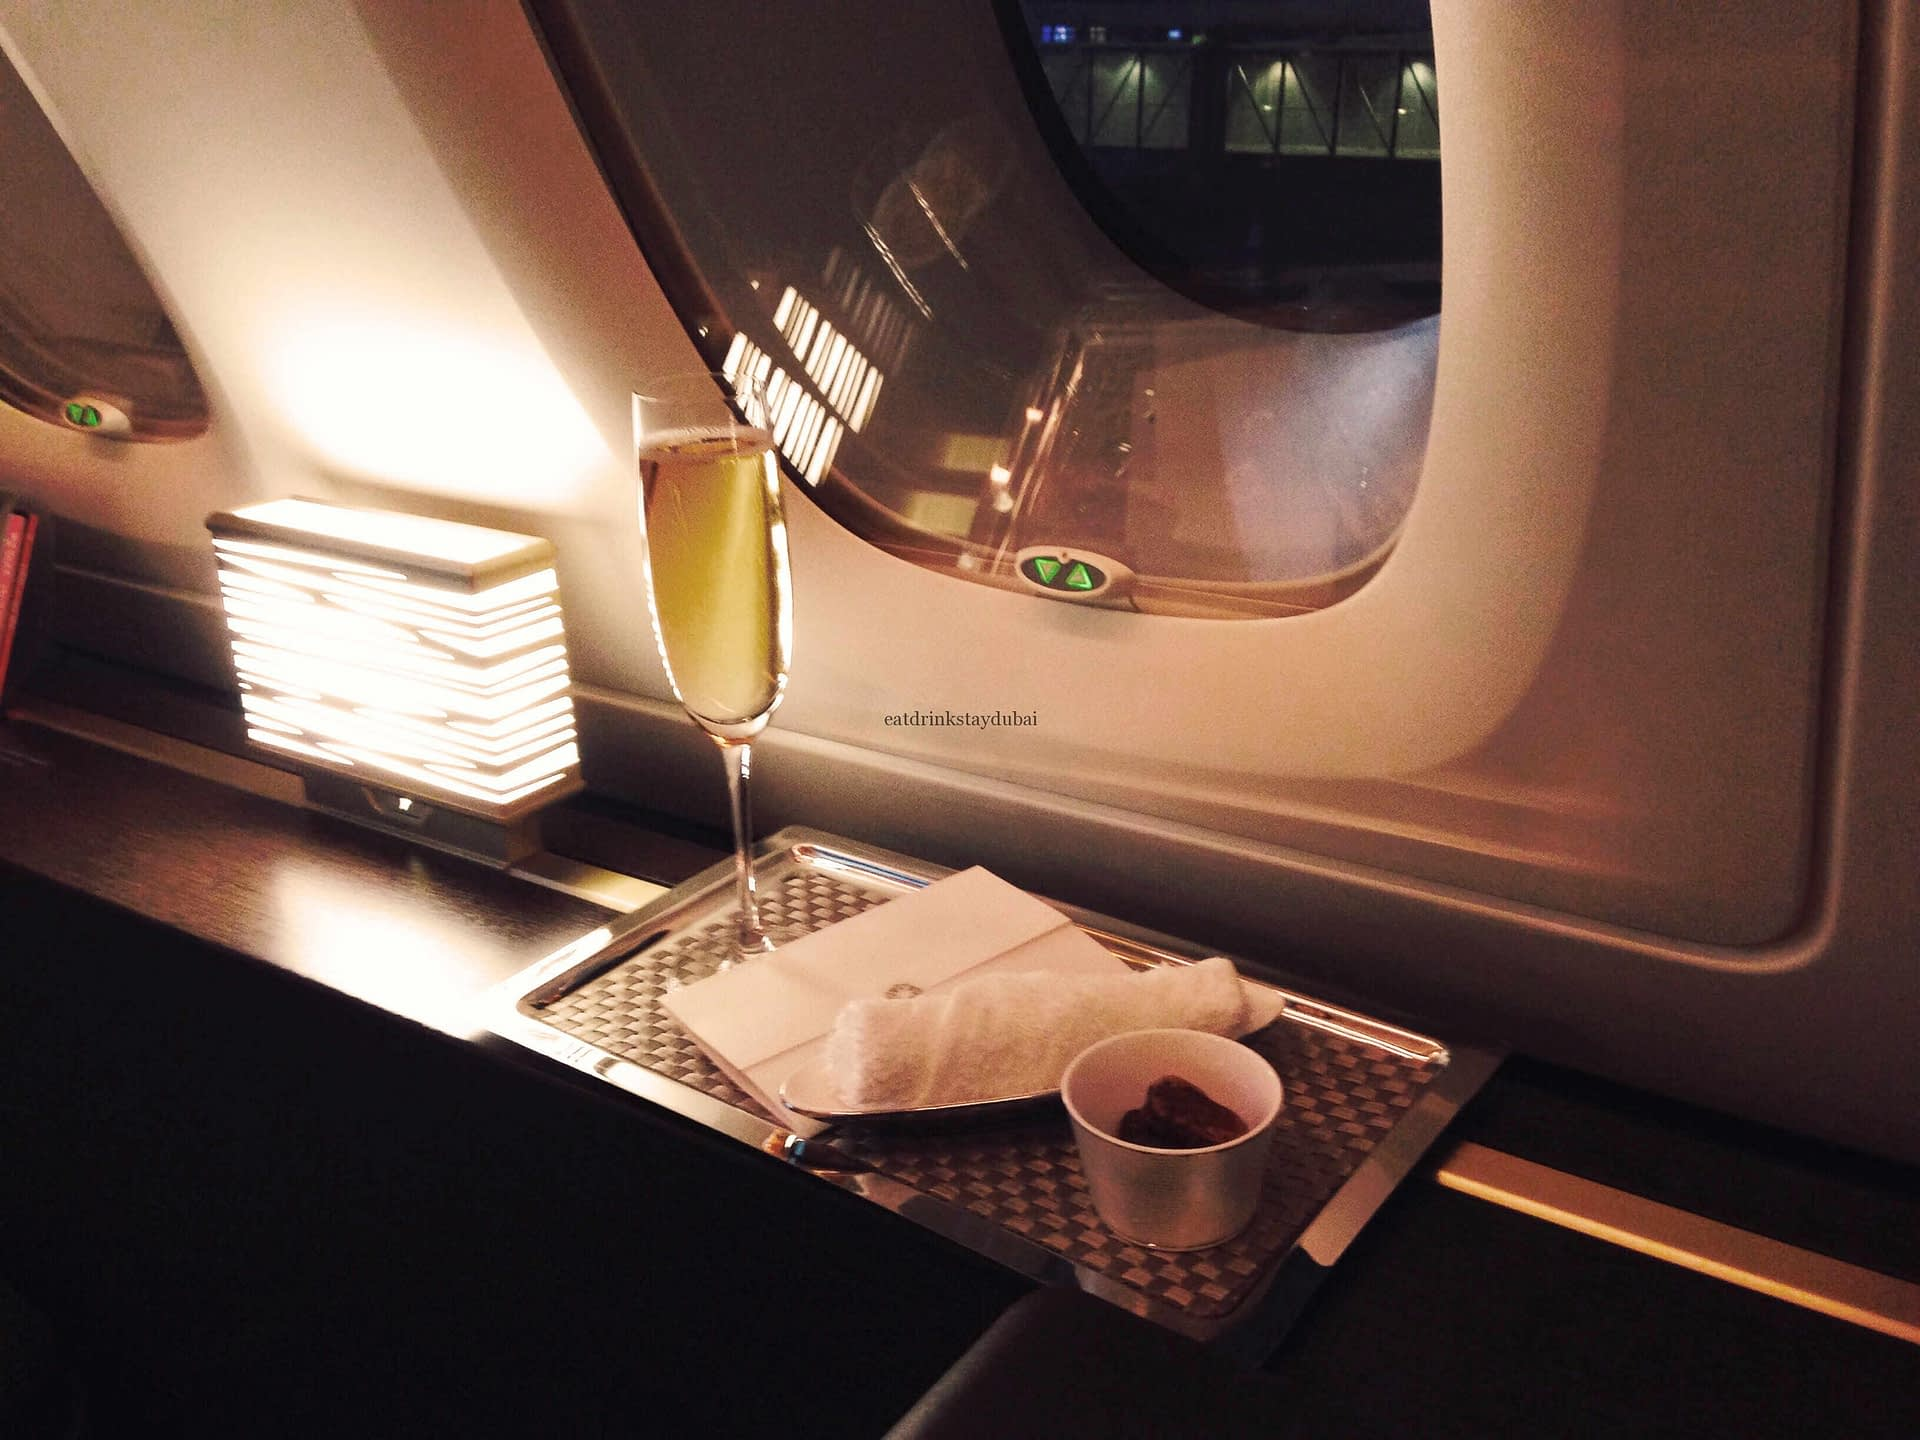 Etihad A380 First Class Apartment: Champagne